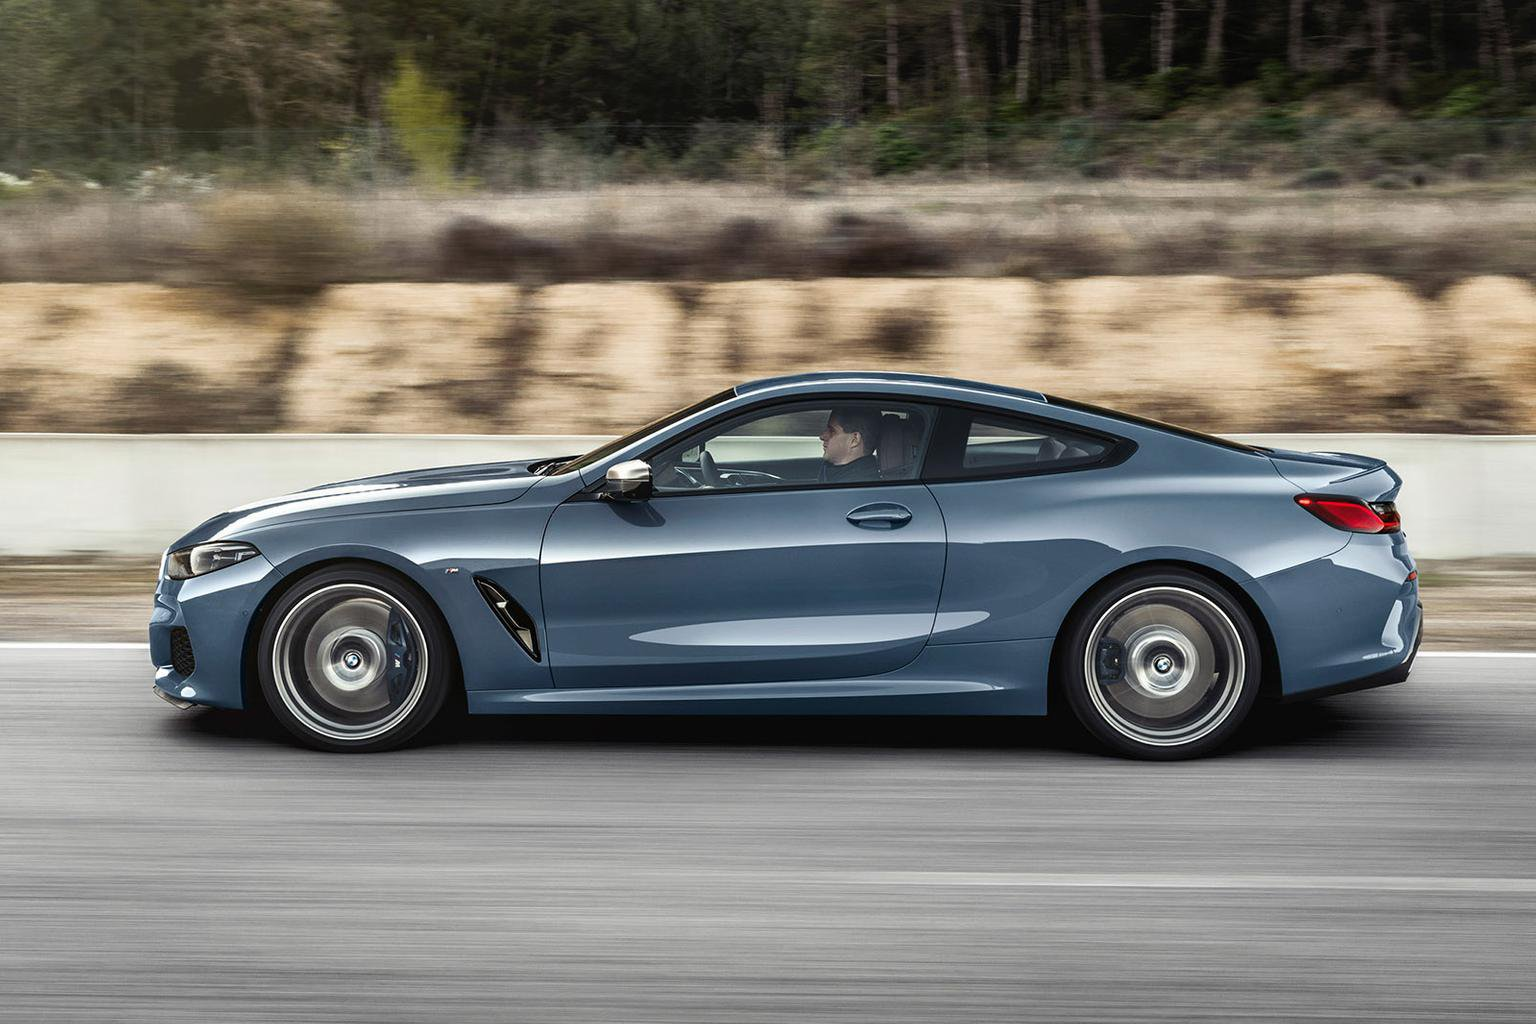 As Standard The Car Sits On 18in Alloy Wheels Although Sizes Up To 20in Are Available Options List Among 8 Series Design Highlights A